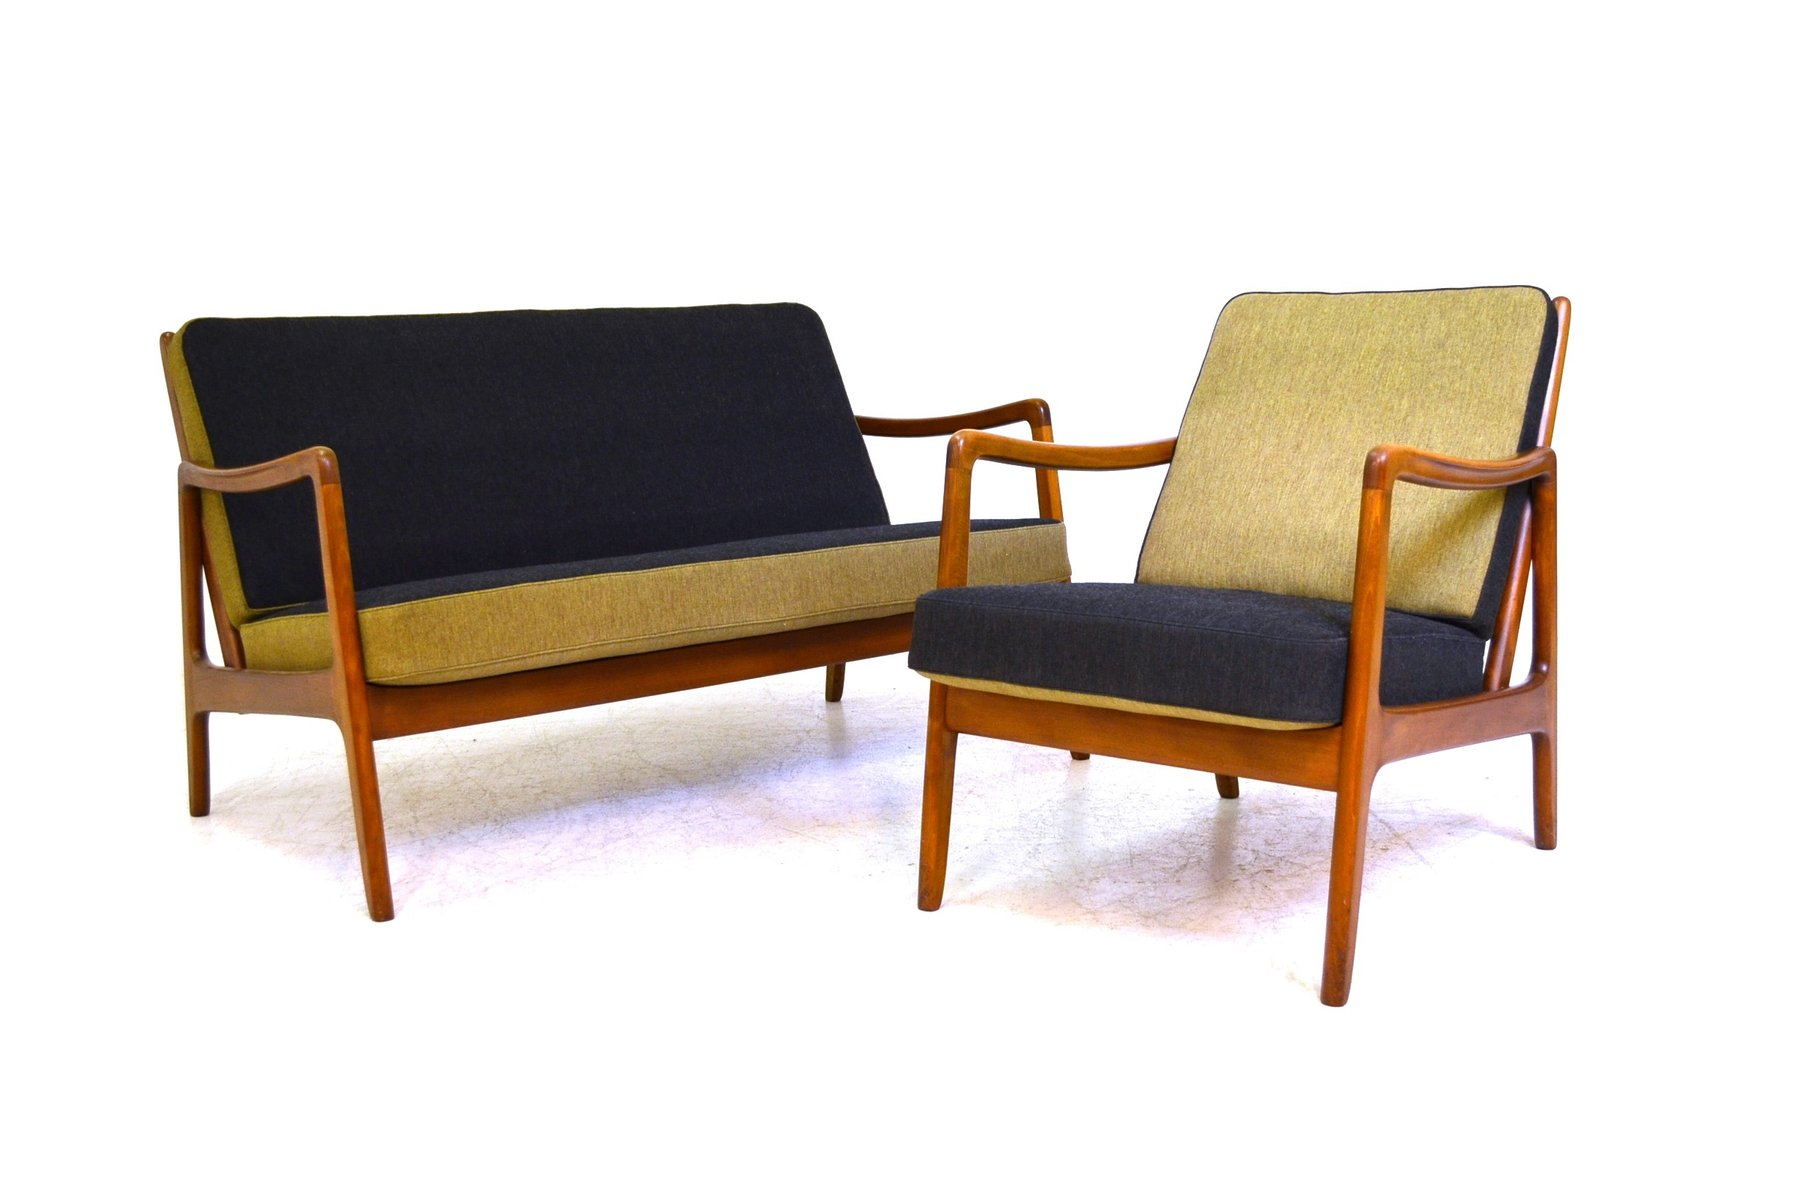 Ihram Kids For Sale Dubai: Sofa Set With Easy Chair By Ole Wanscher For France